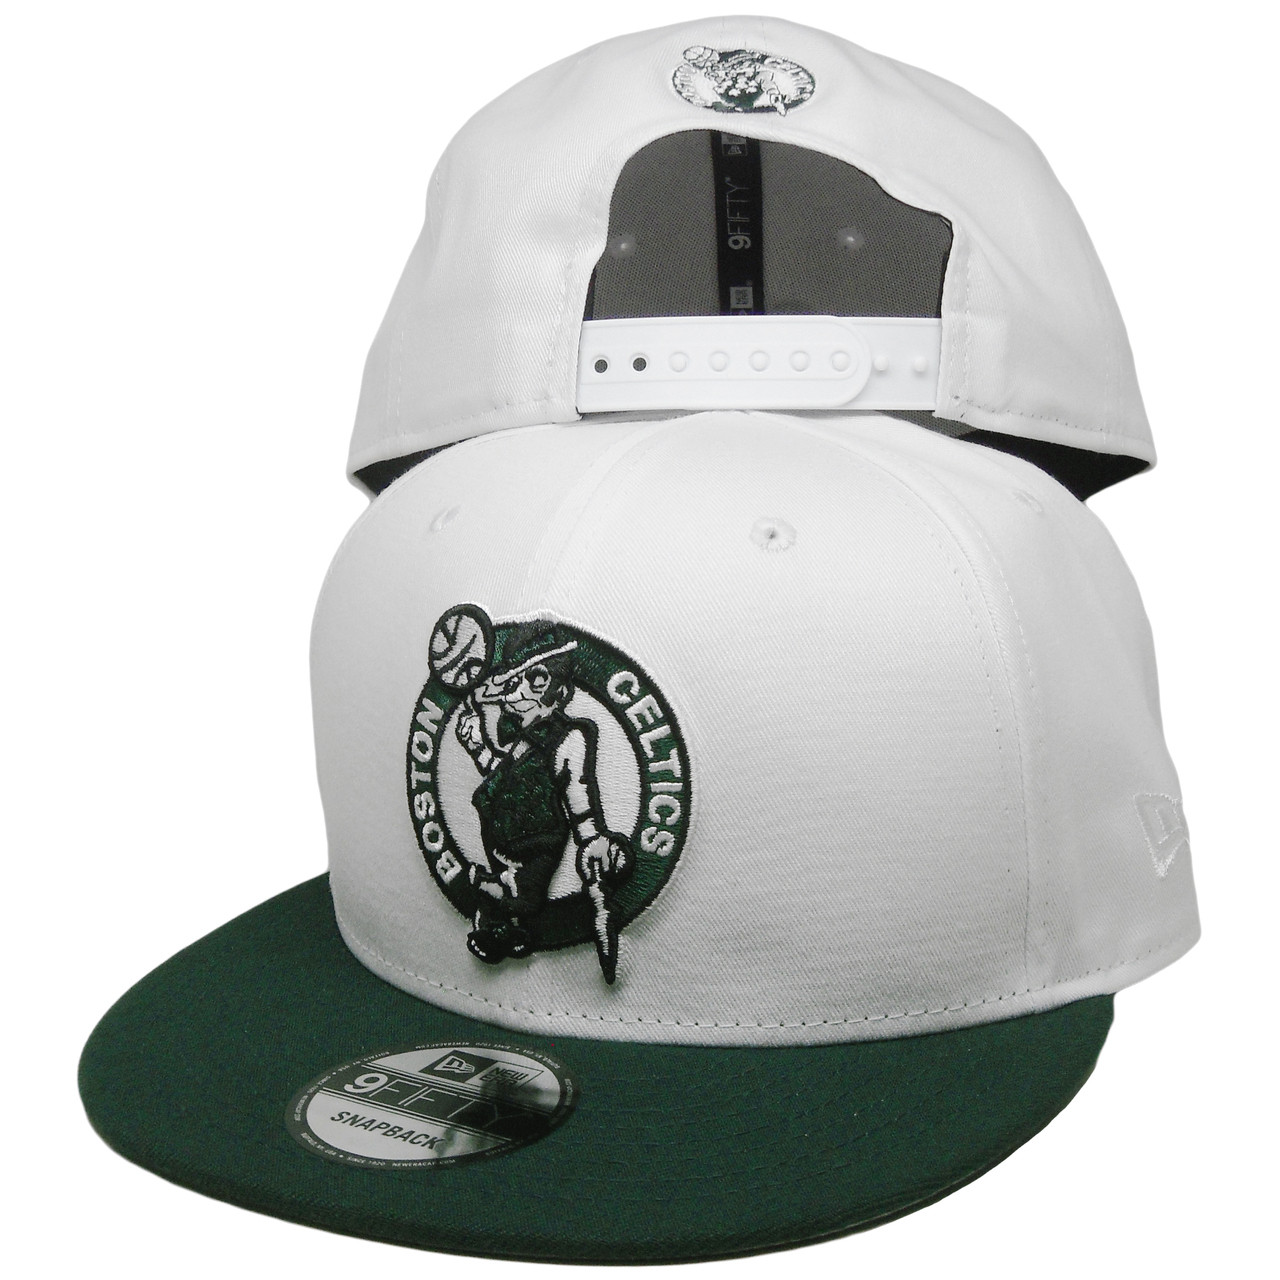 1034050f Boston Celtics New Era Custom 9Fifty Snapback Hat - White, Dark Green, Black  - ECapsUnlimited.com